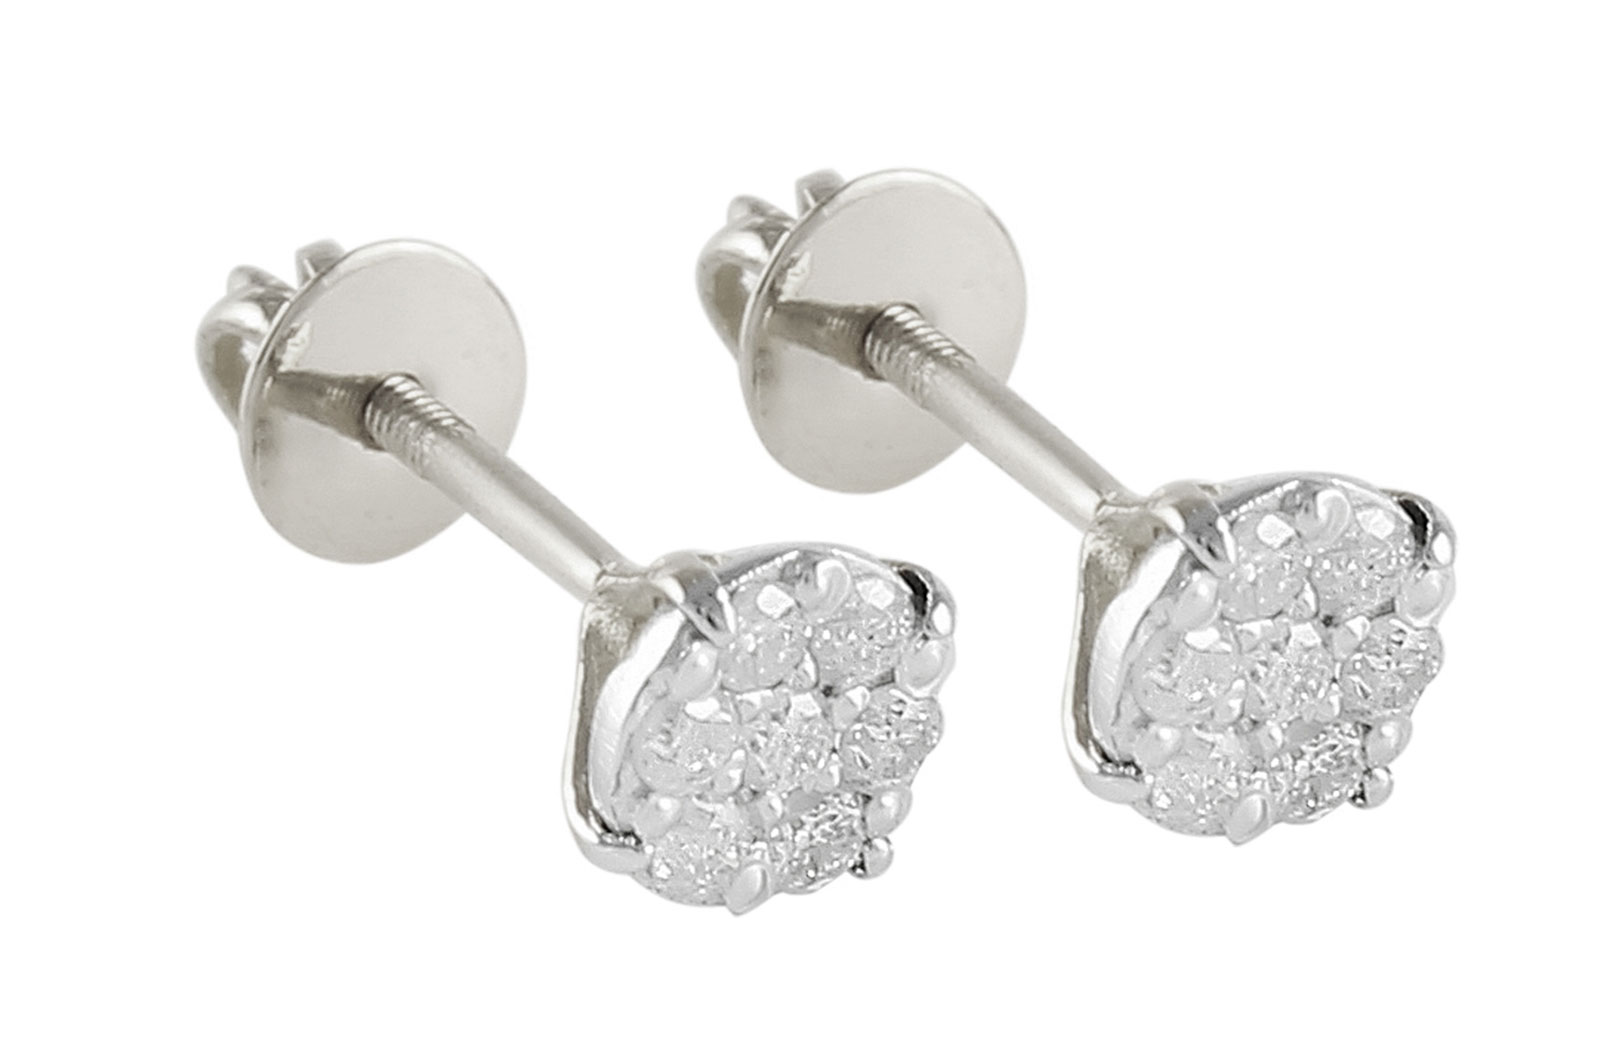 Vera Perla 18K Solid White Gold and 0.14Cts Genuine Diamonds Solitaire Screw Back Earrings